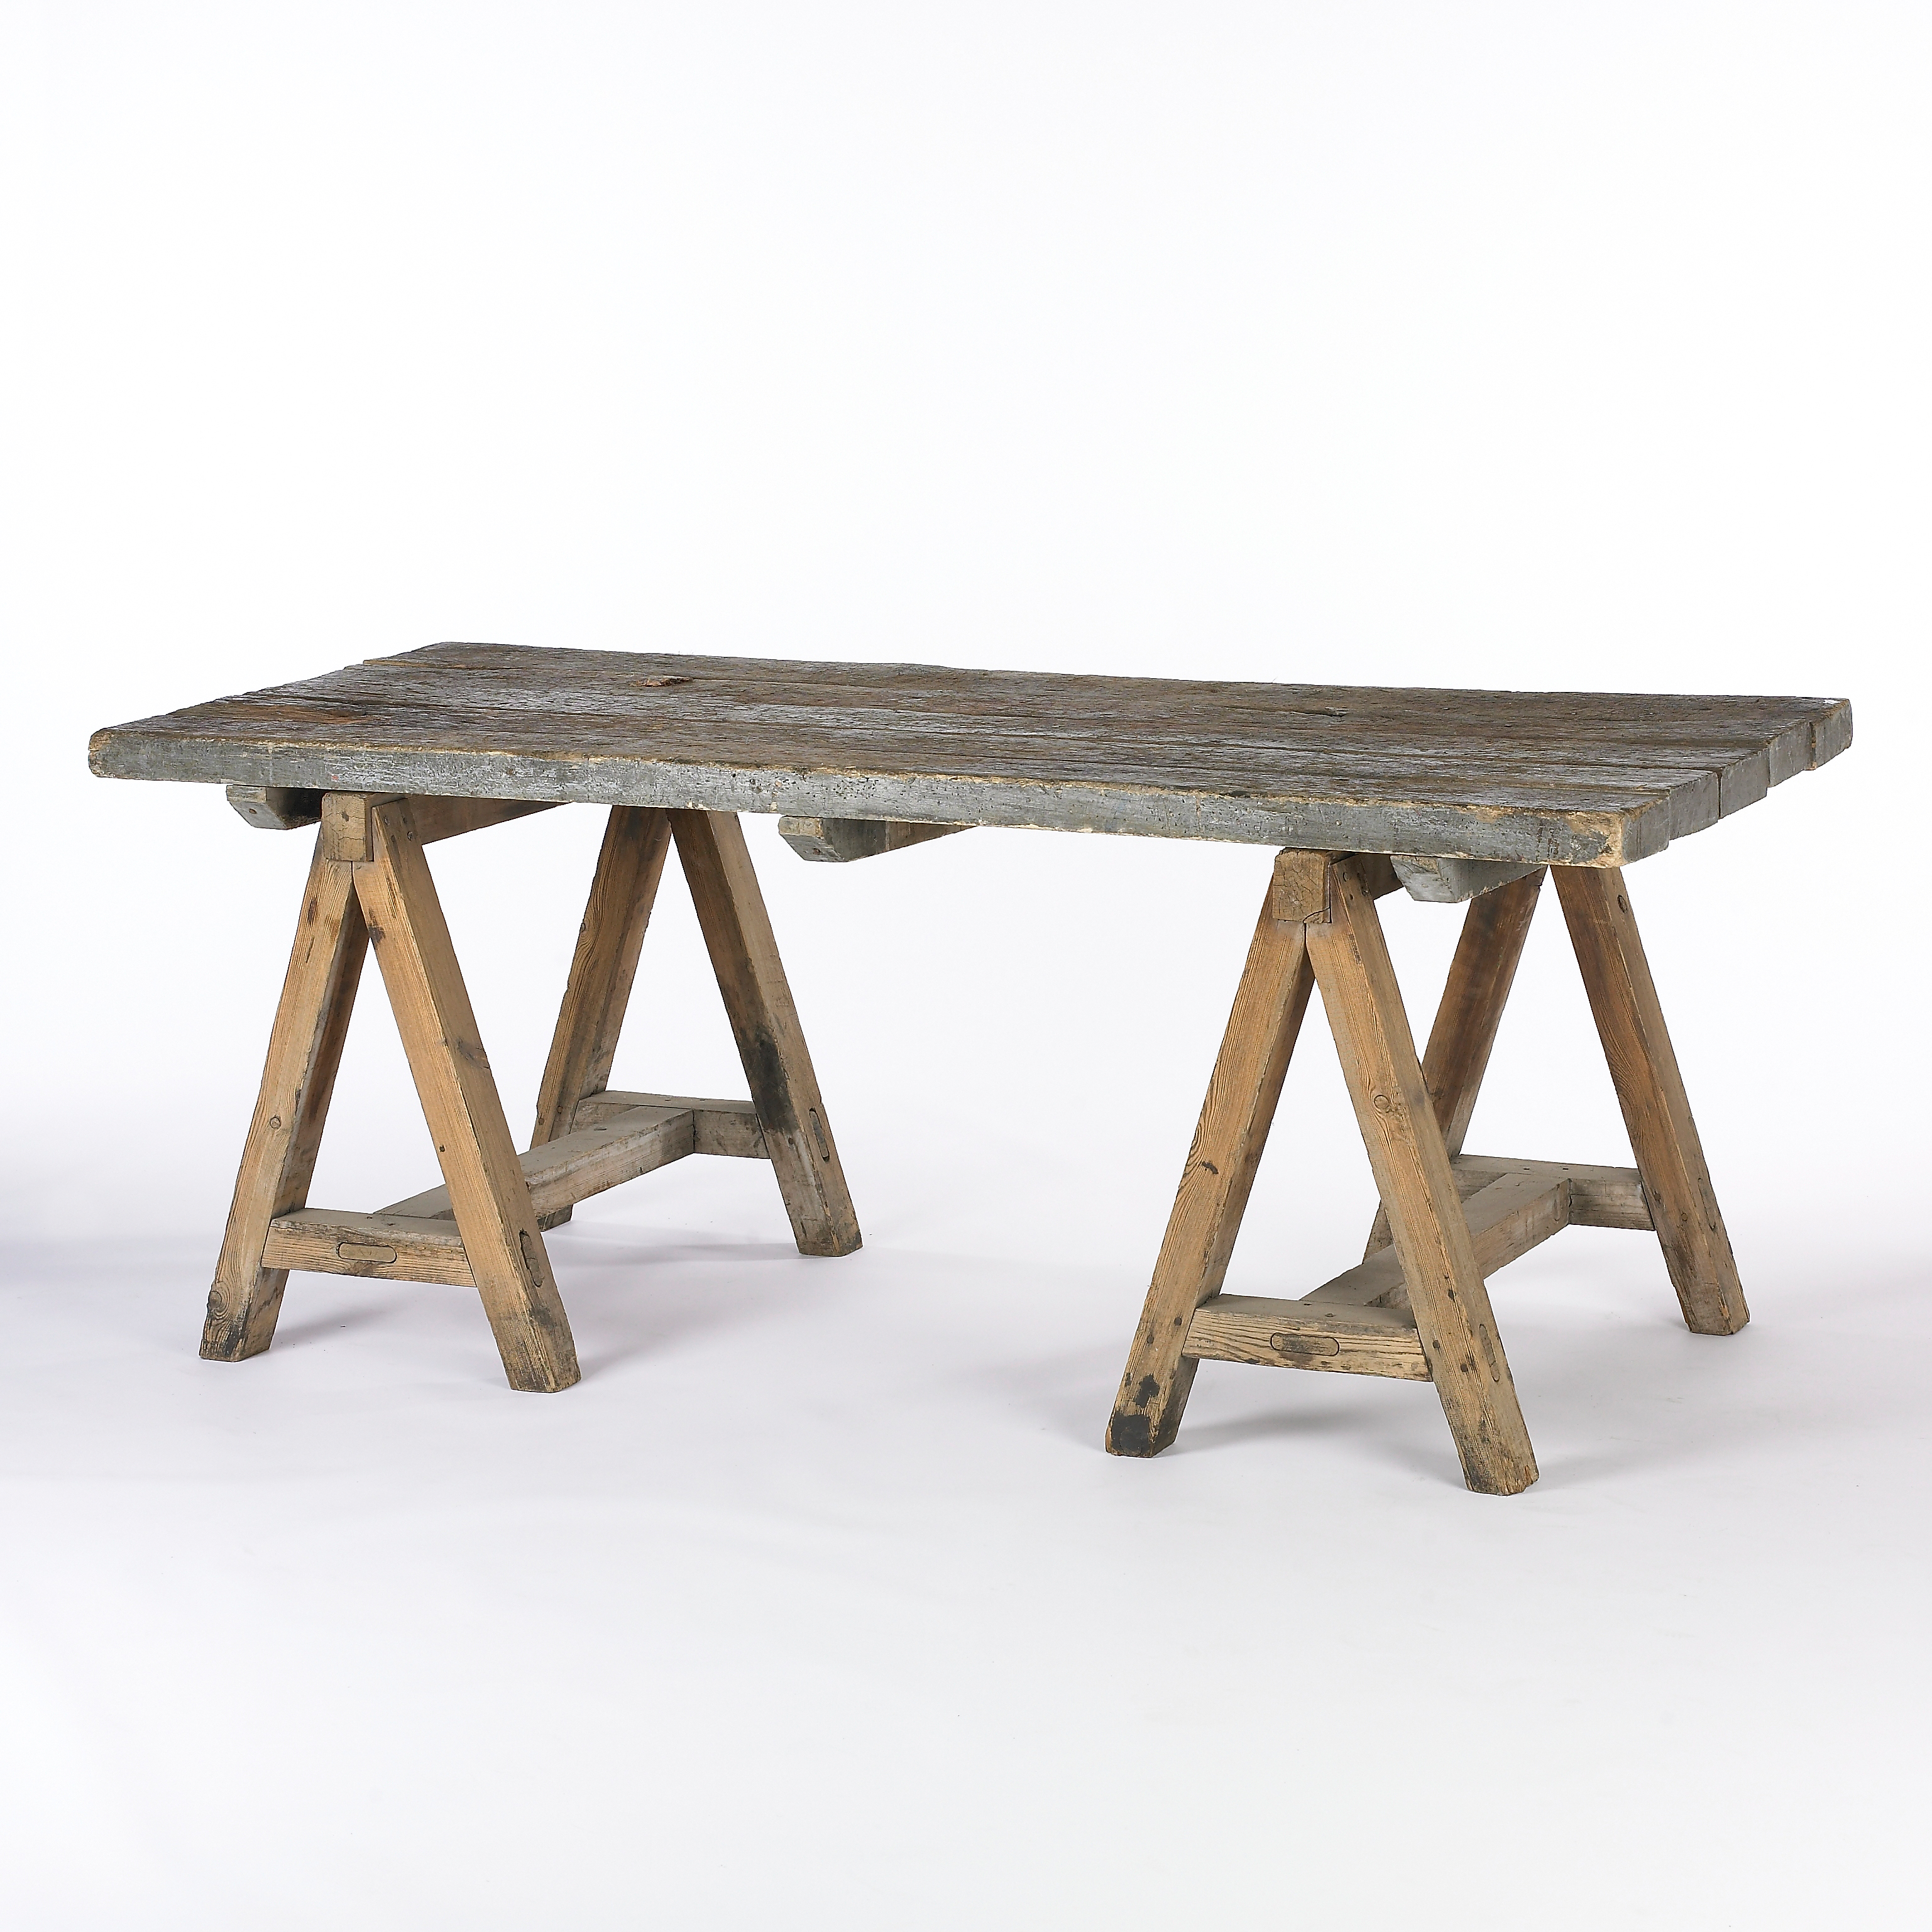 3074x3074px 7 Perfect Sawhorse Dining Table Picture in Furniture